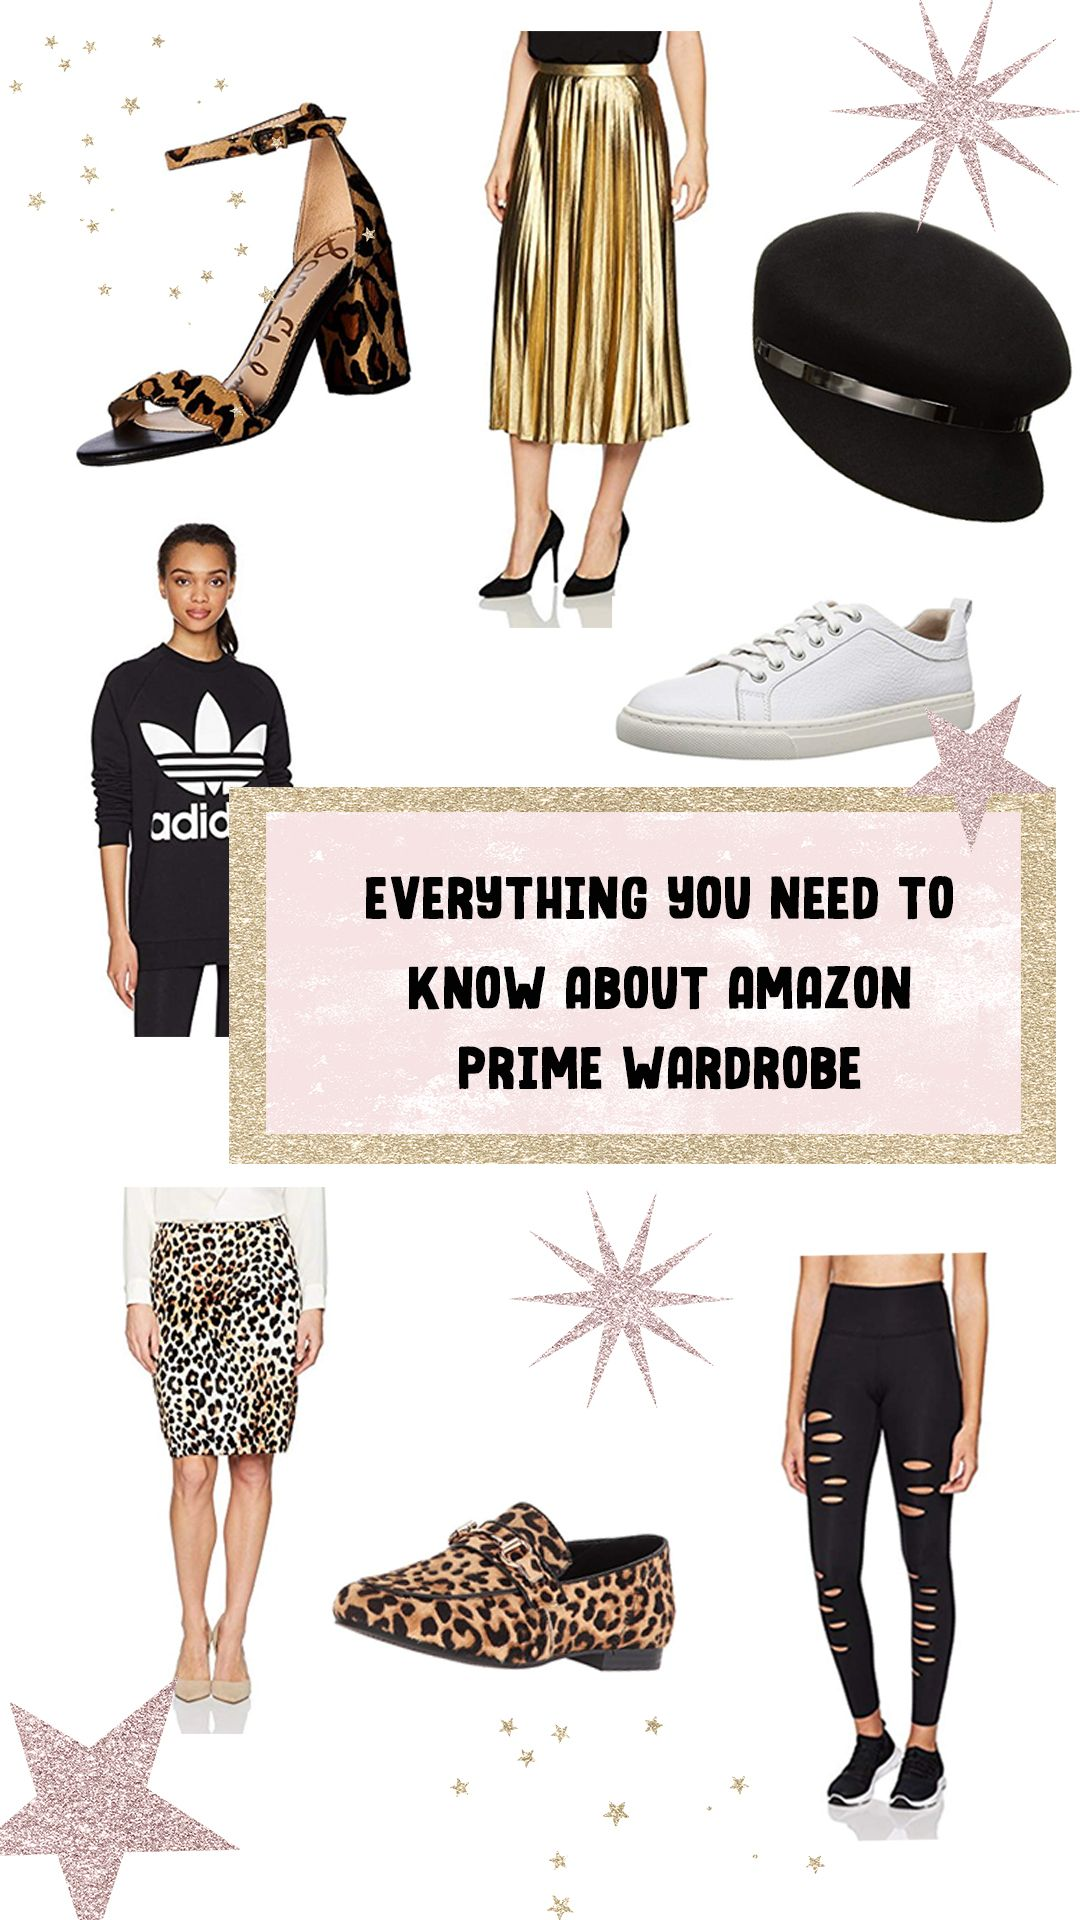 75607dc1c8b Do you love Amazon Prime!  Did you know Amazon Prime Wardrobe lets you try